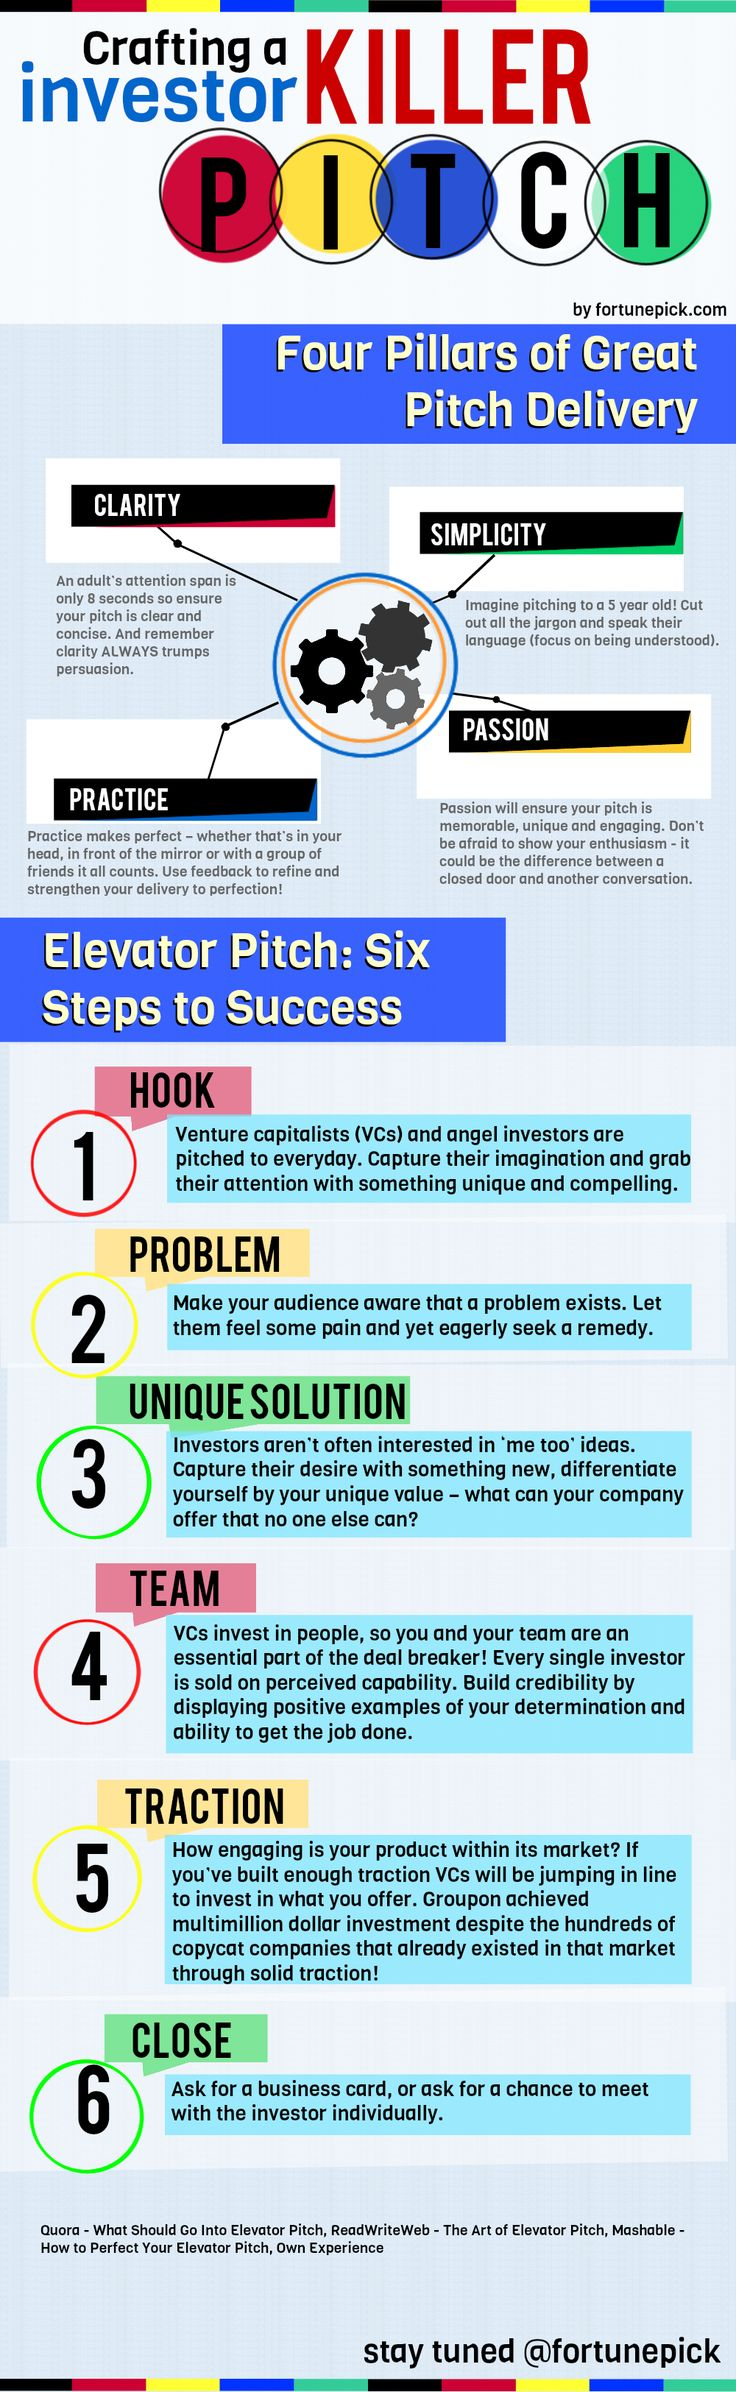 How To Craft a Winning Startup Pitch [INFOGRAPHIC] - Forbes #albertobokos